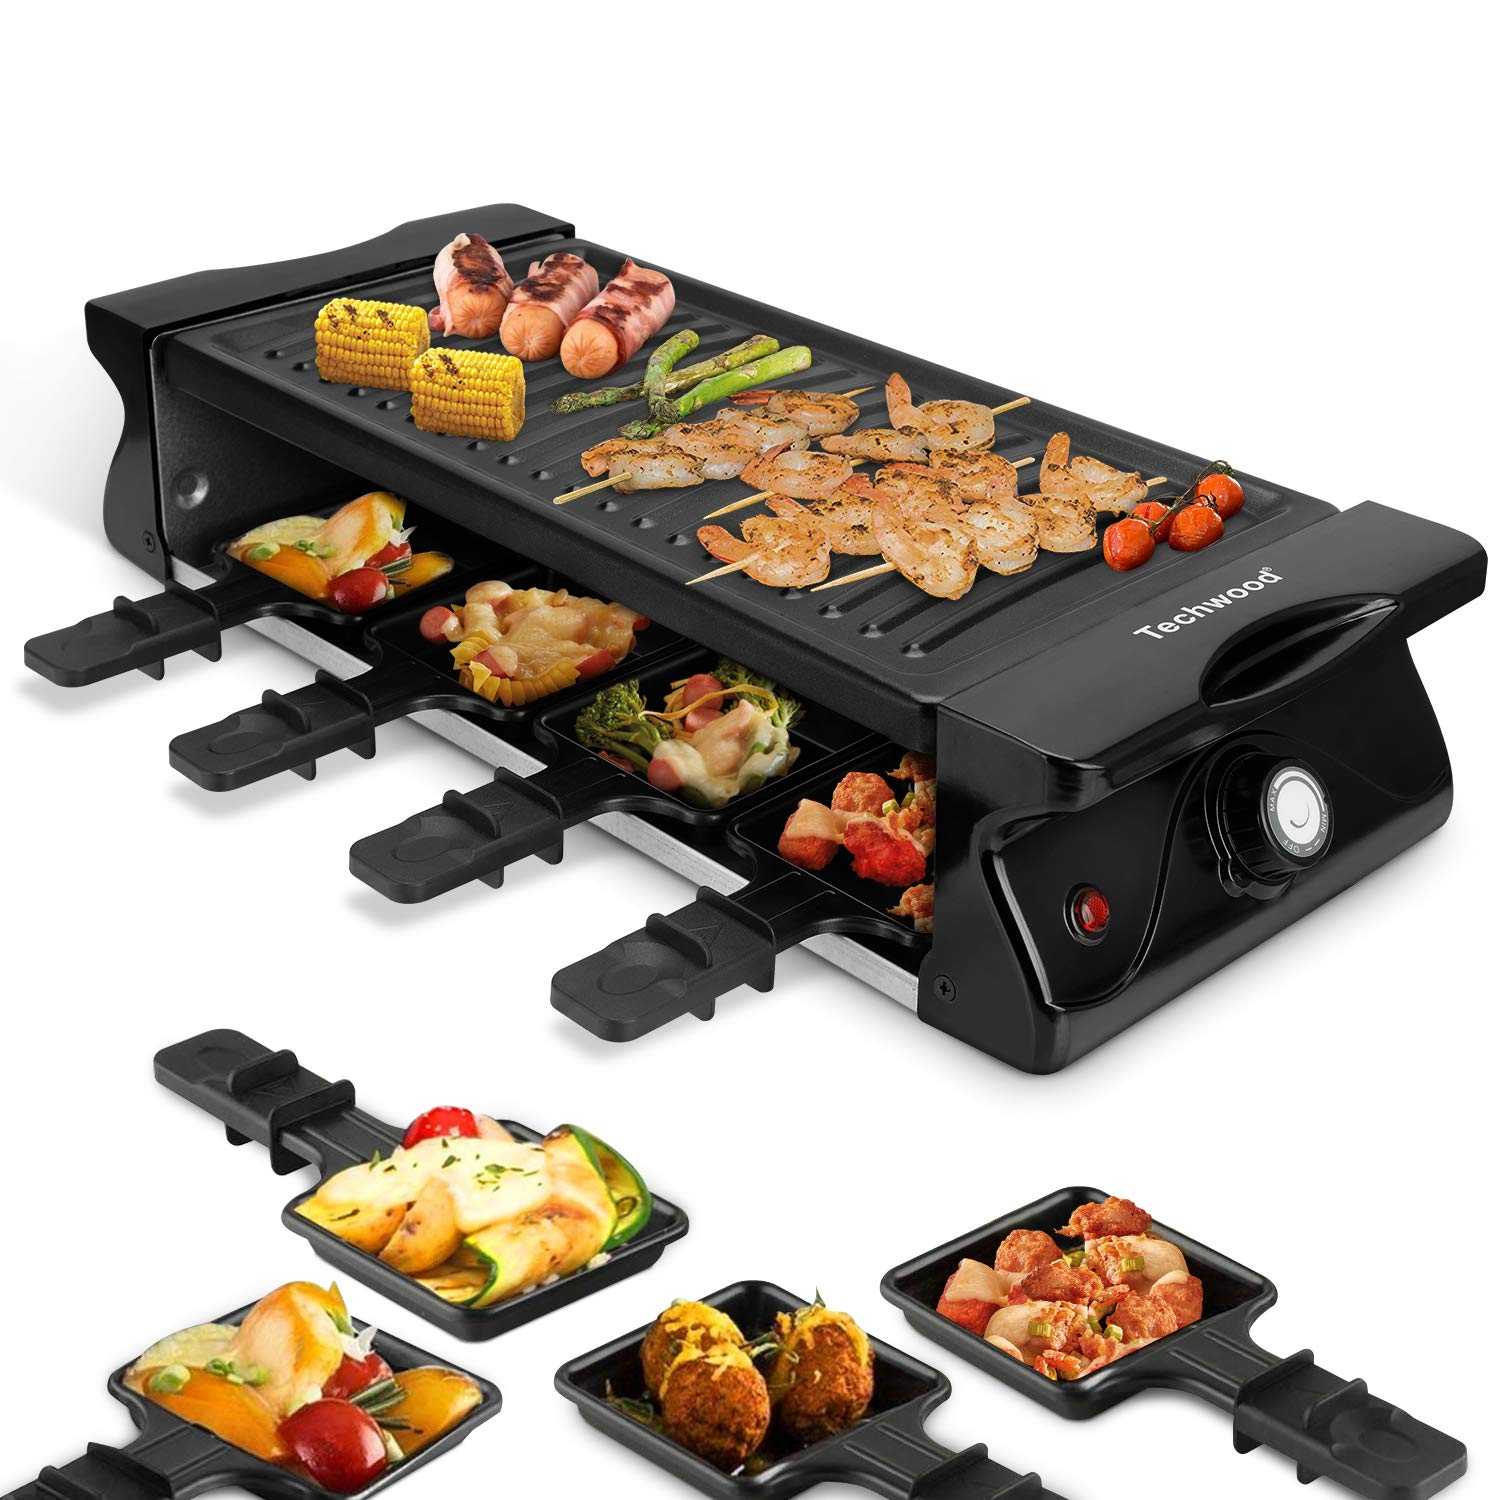 Techwood Electric Raclette Grill BBQ Grill 1500w Raclette Tabletop Grill Adjustable Temperature Control 8 Paddles Large Non-stick Grilling Surface for Raclette Party Easy Clean by Techwood